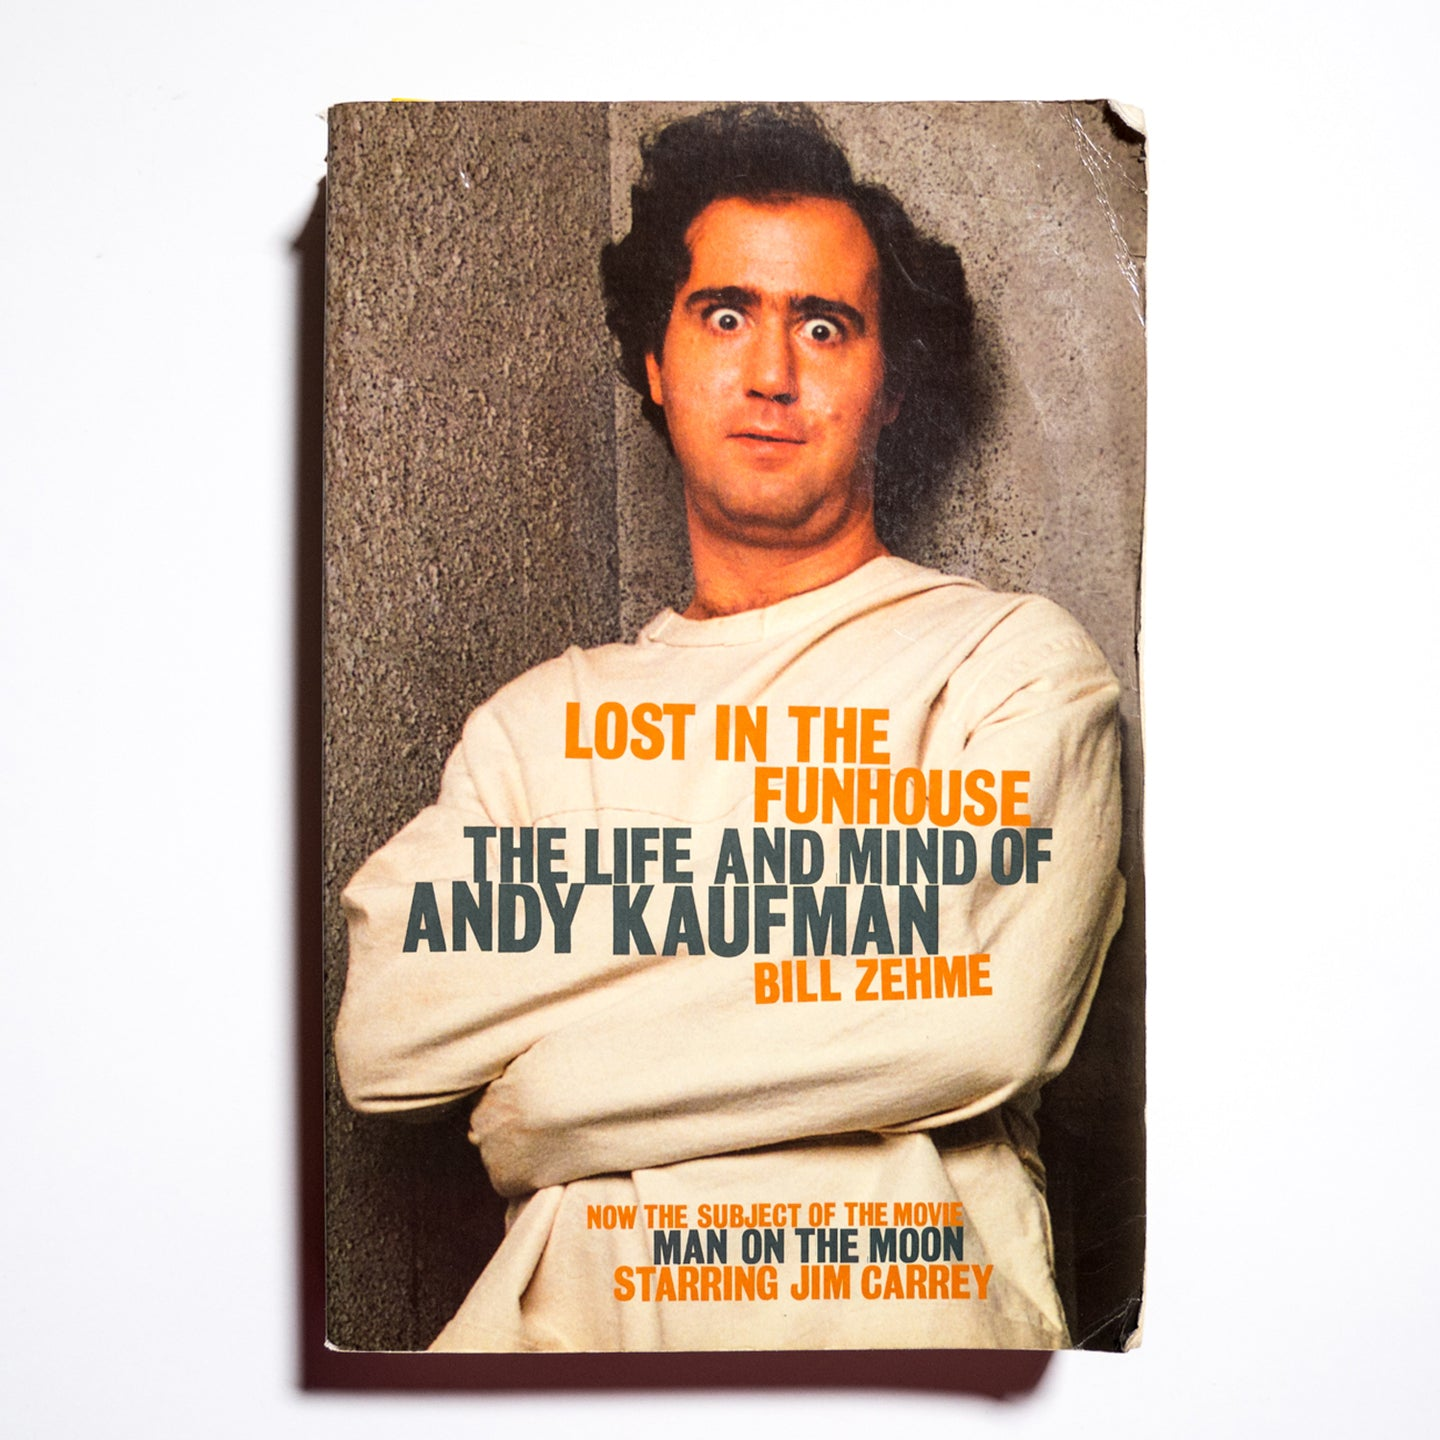 BILL ZEHME | Lost in the Funhouse: the Life and Mind of Andy Kaufman*